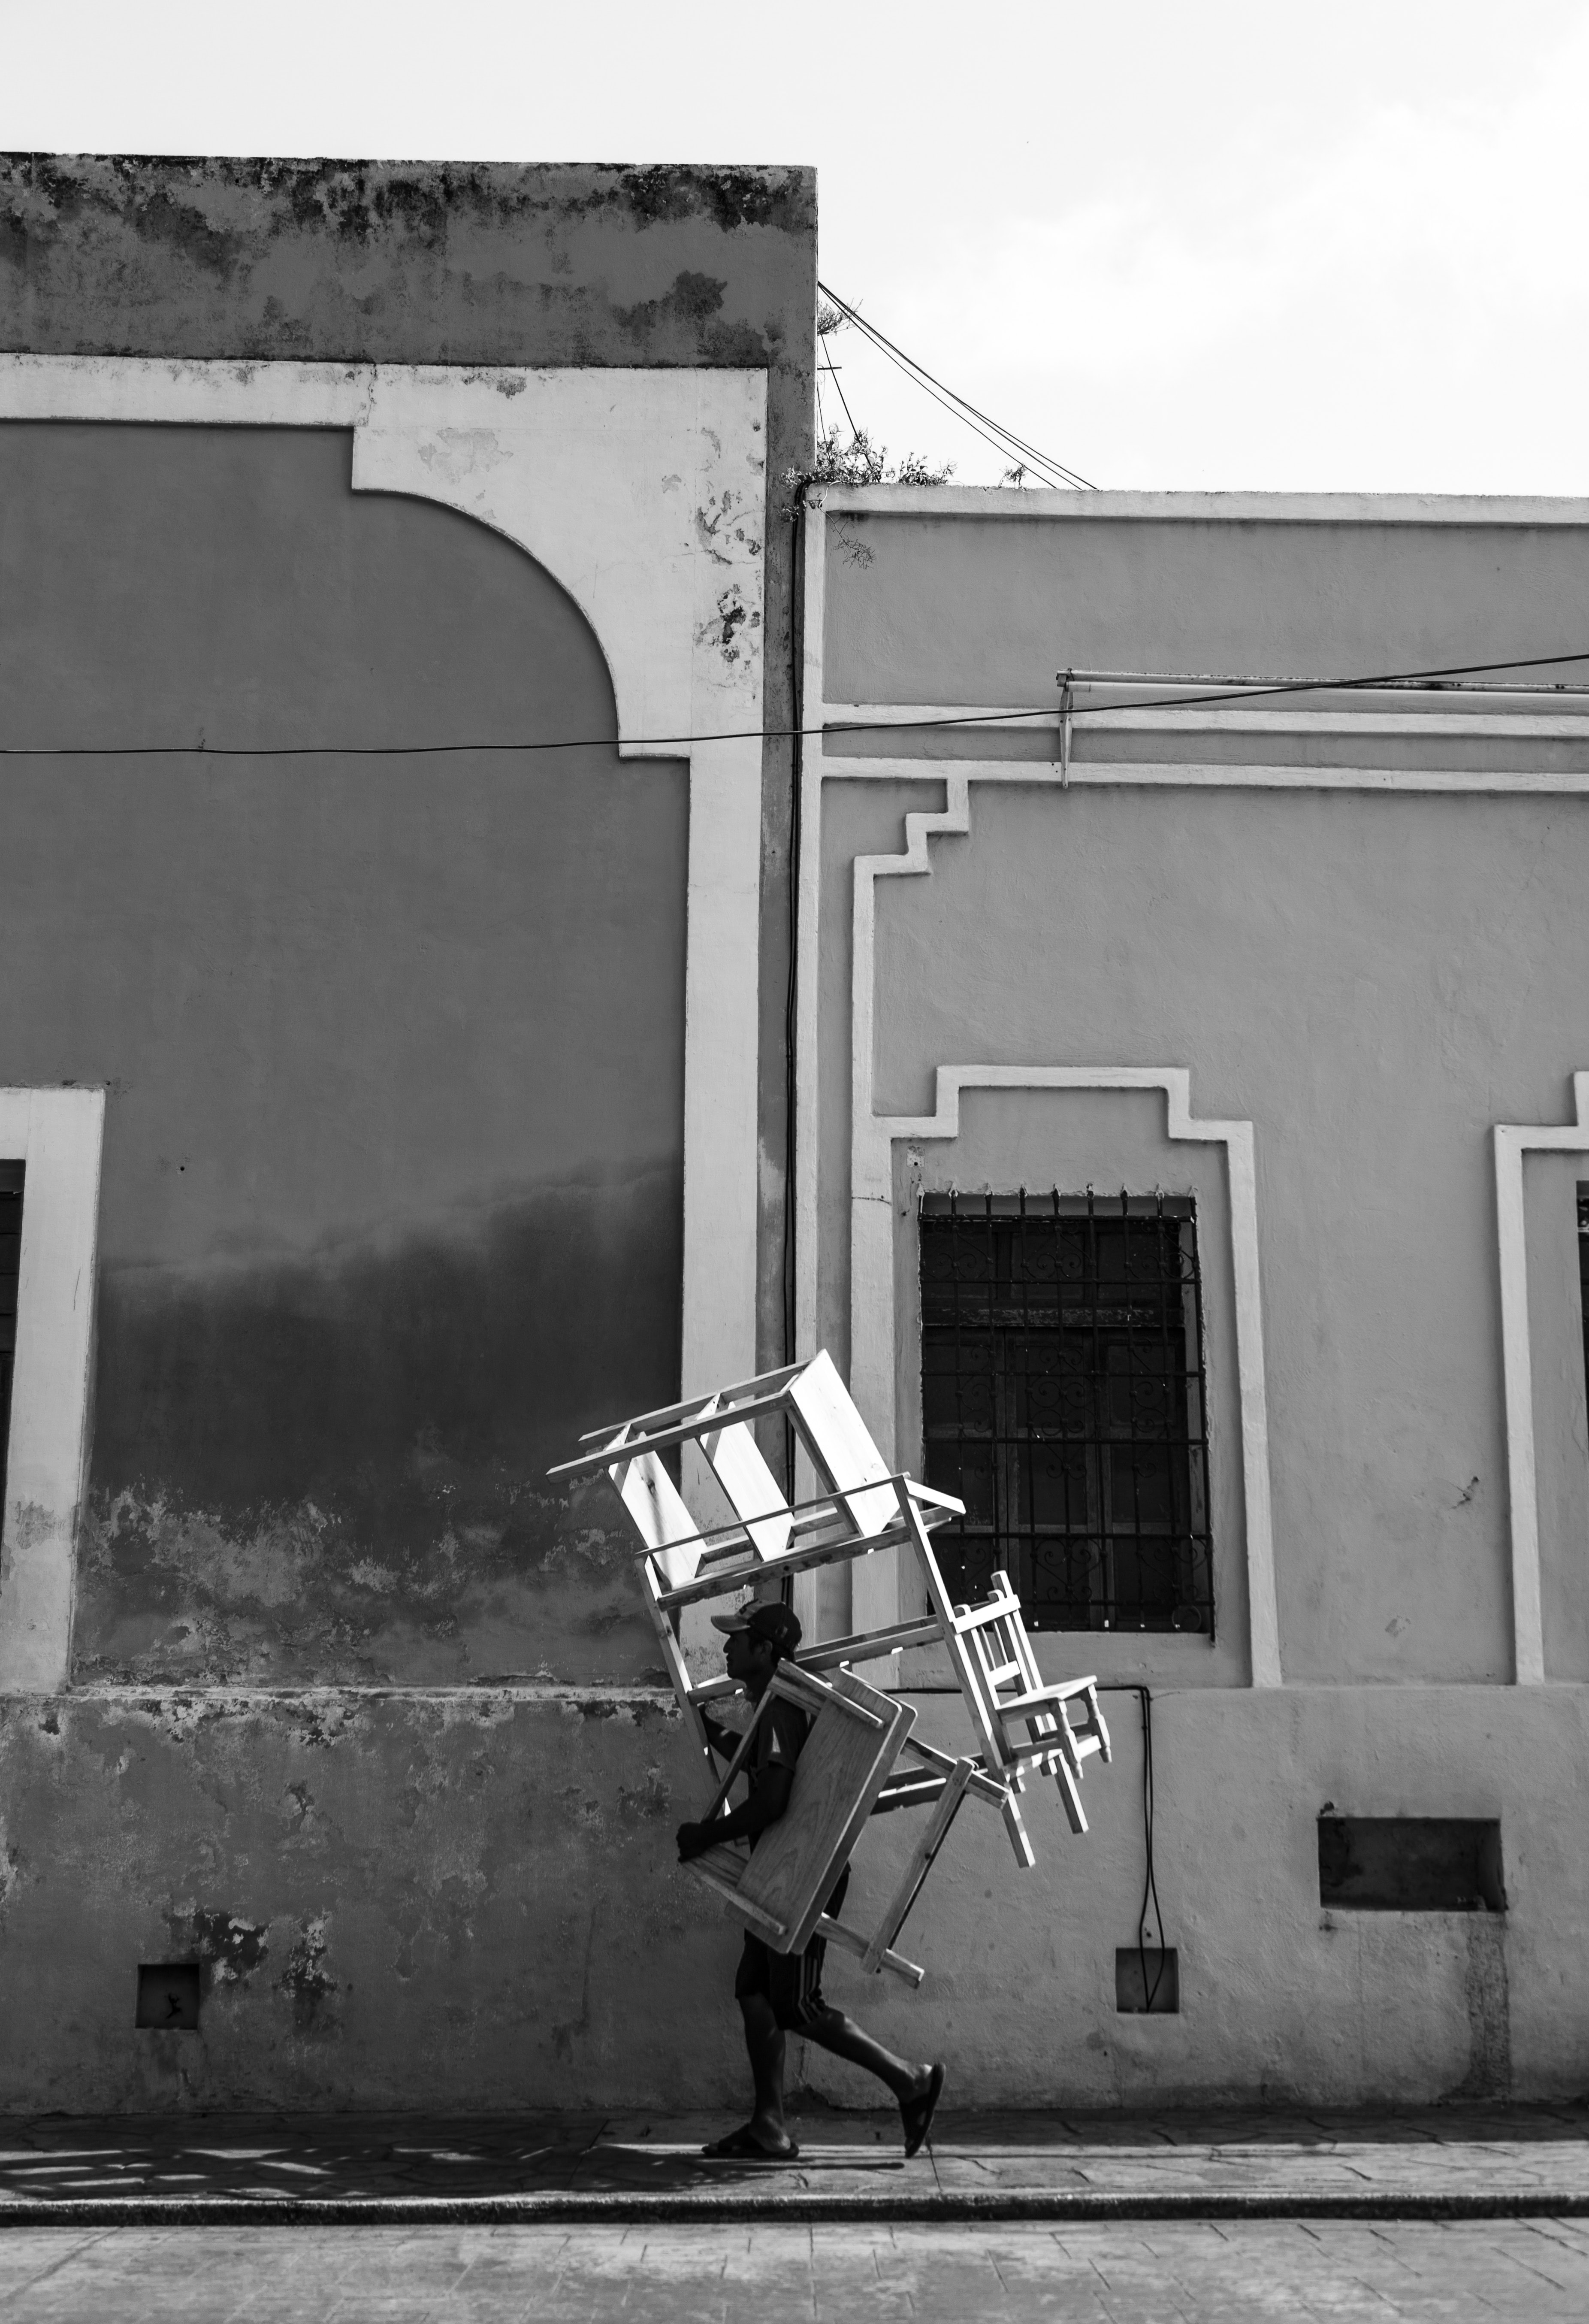 grayscale photography of person carrying furniture while walking near concrete house at daytime